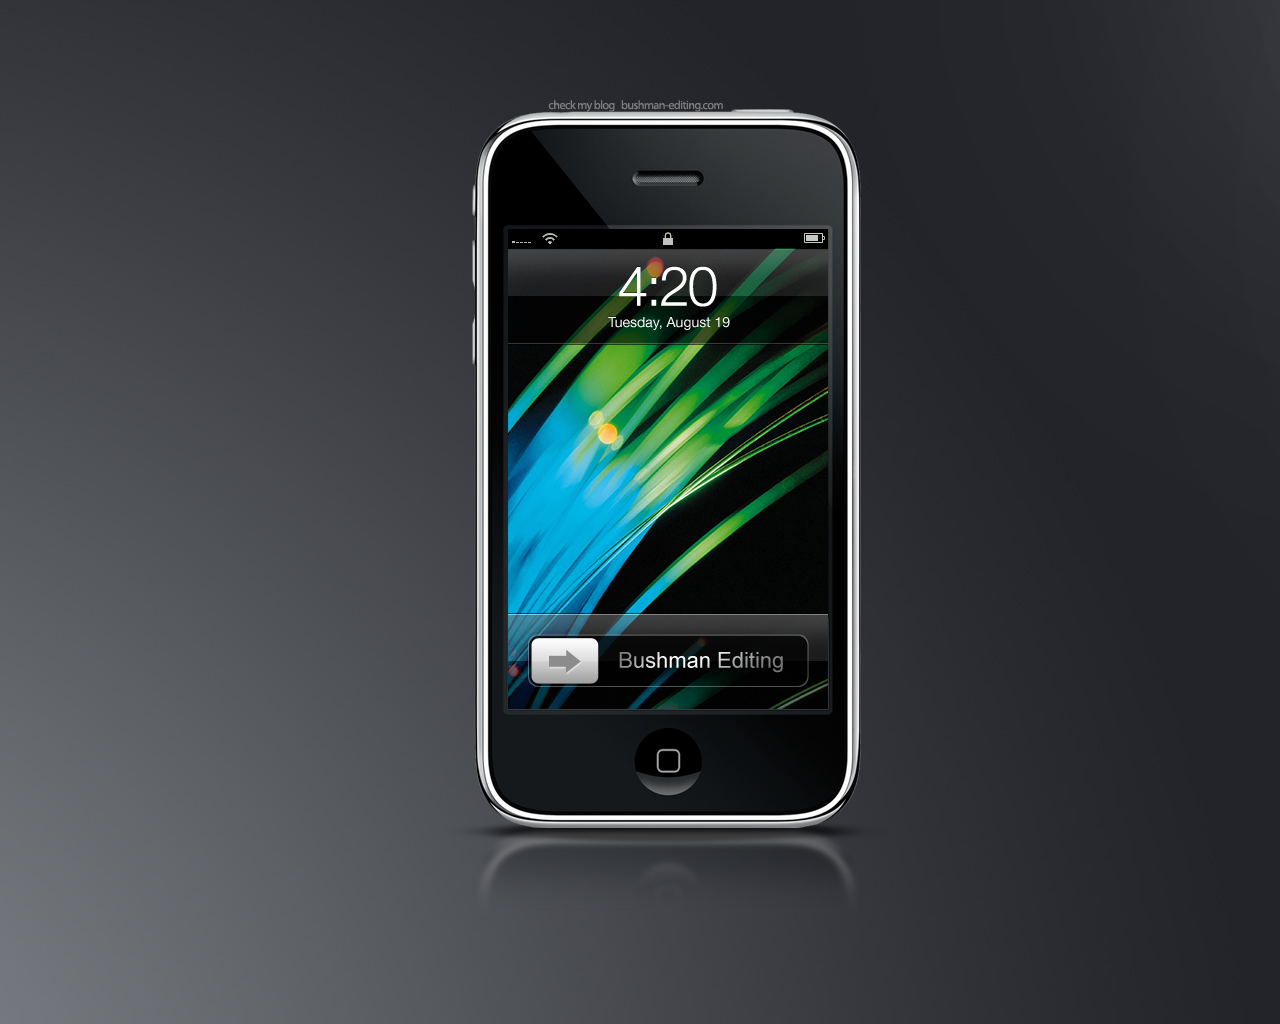 Hd wallpaper iphone 5 - Http 1 Bp Blogspot Com Tepbvrls5se Tpacudqhdji The All New Iphone 5